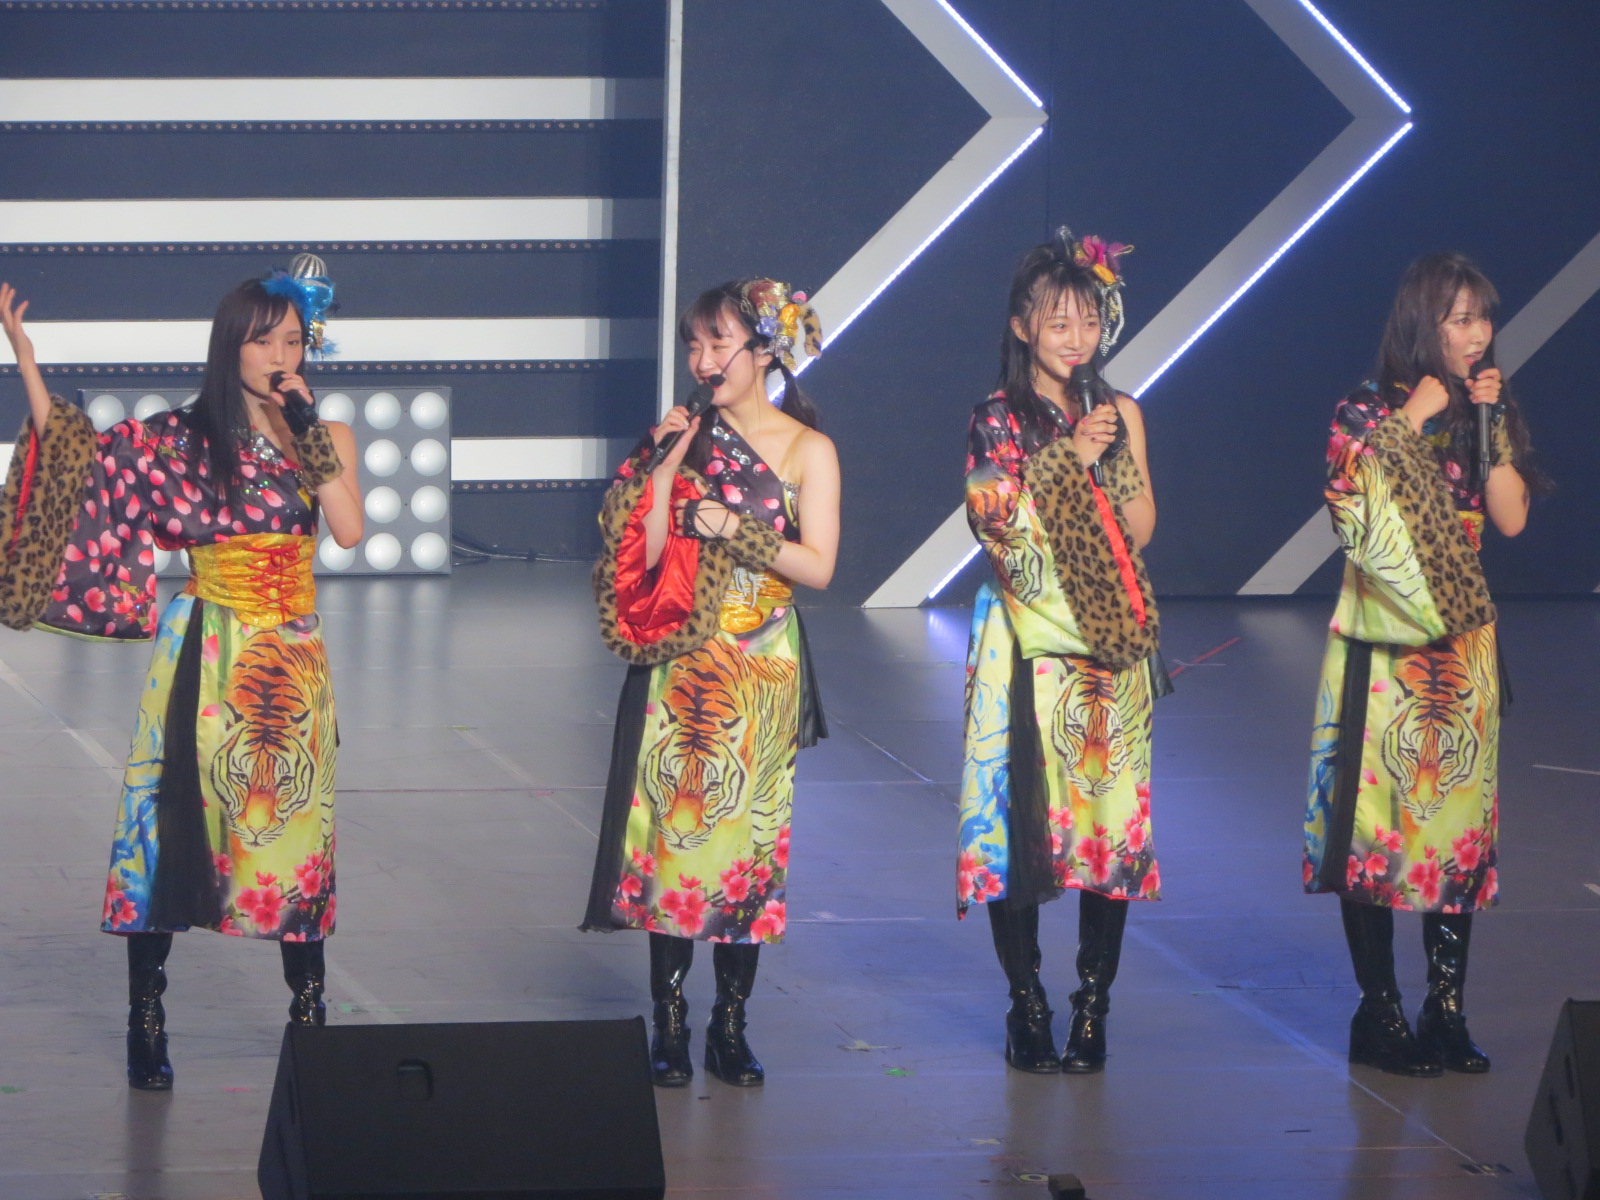 NMB48 LIVE TOUR 2018 in Summer・石川公演の画像-038